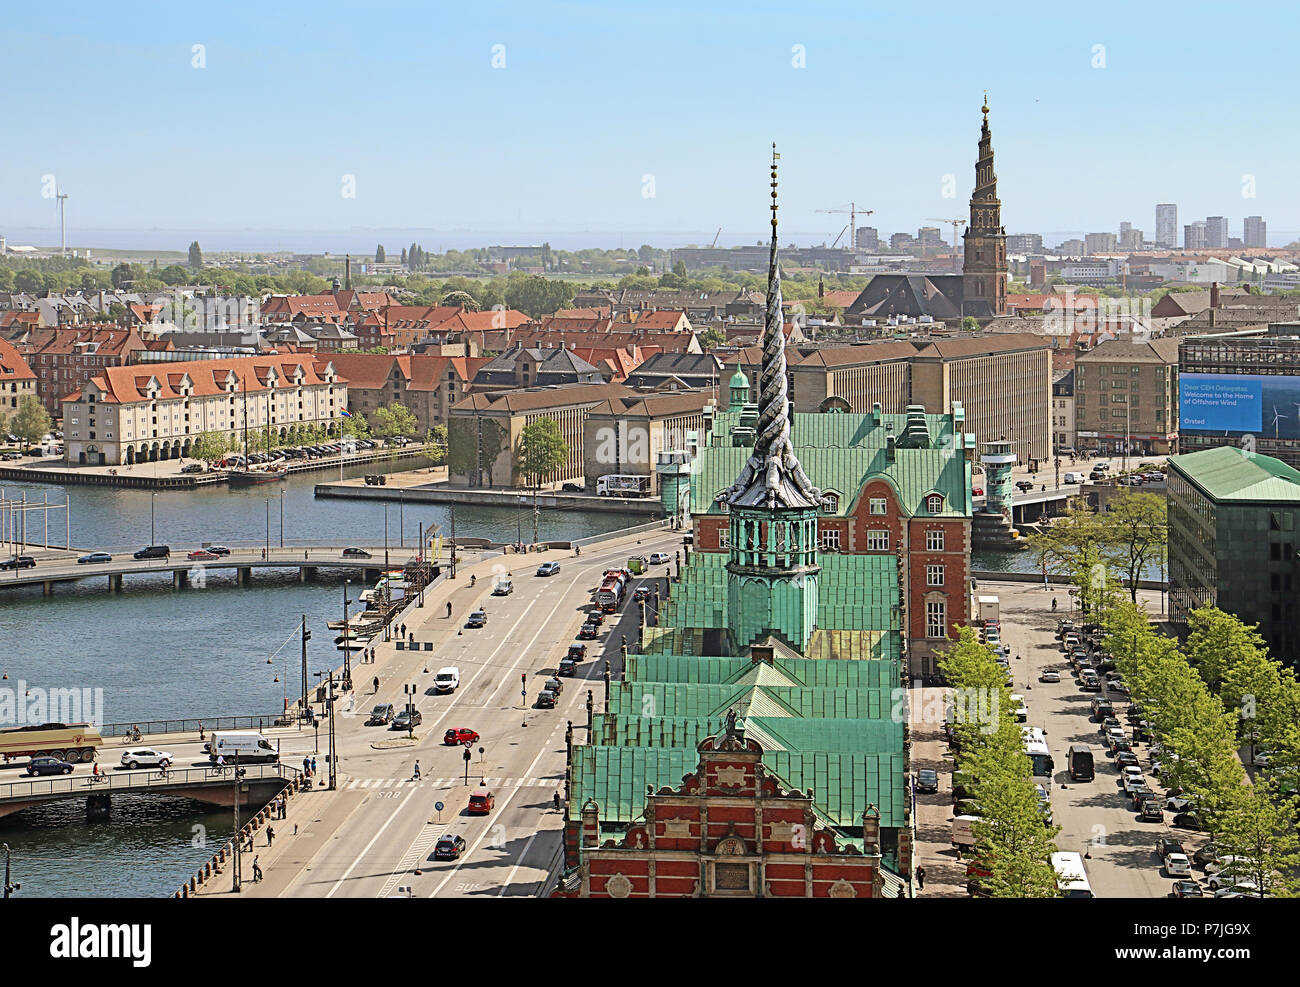 COPENHAGEN, DENMARK - MAY 17, 2018 - Panoramic view of Copenhagen from the  tower of Christiansborg Palace, house of the danish Parliament: in center  - Stock Image